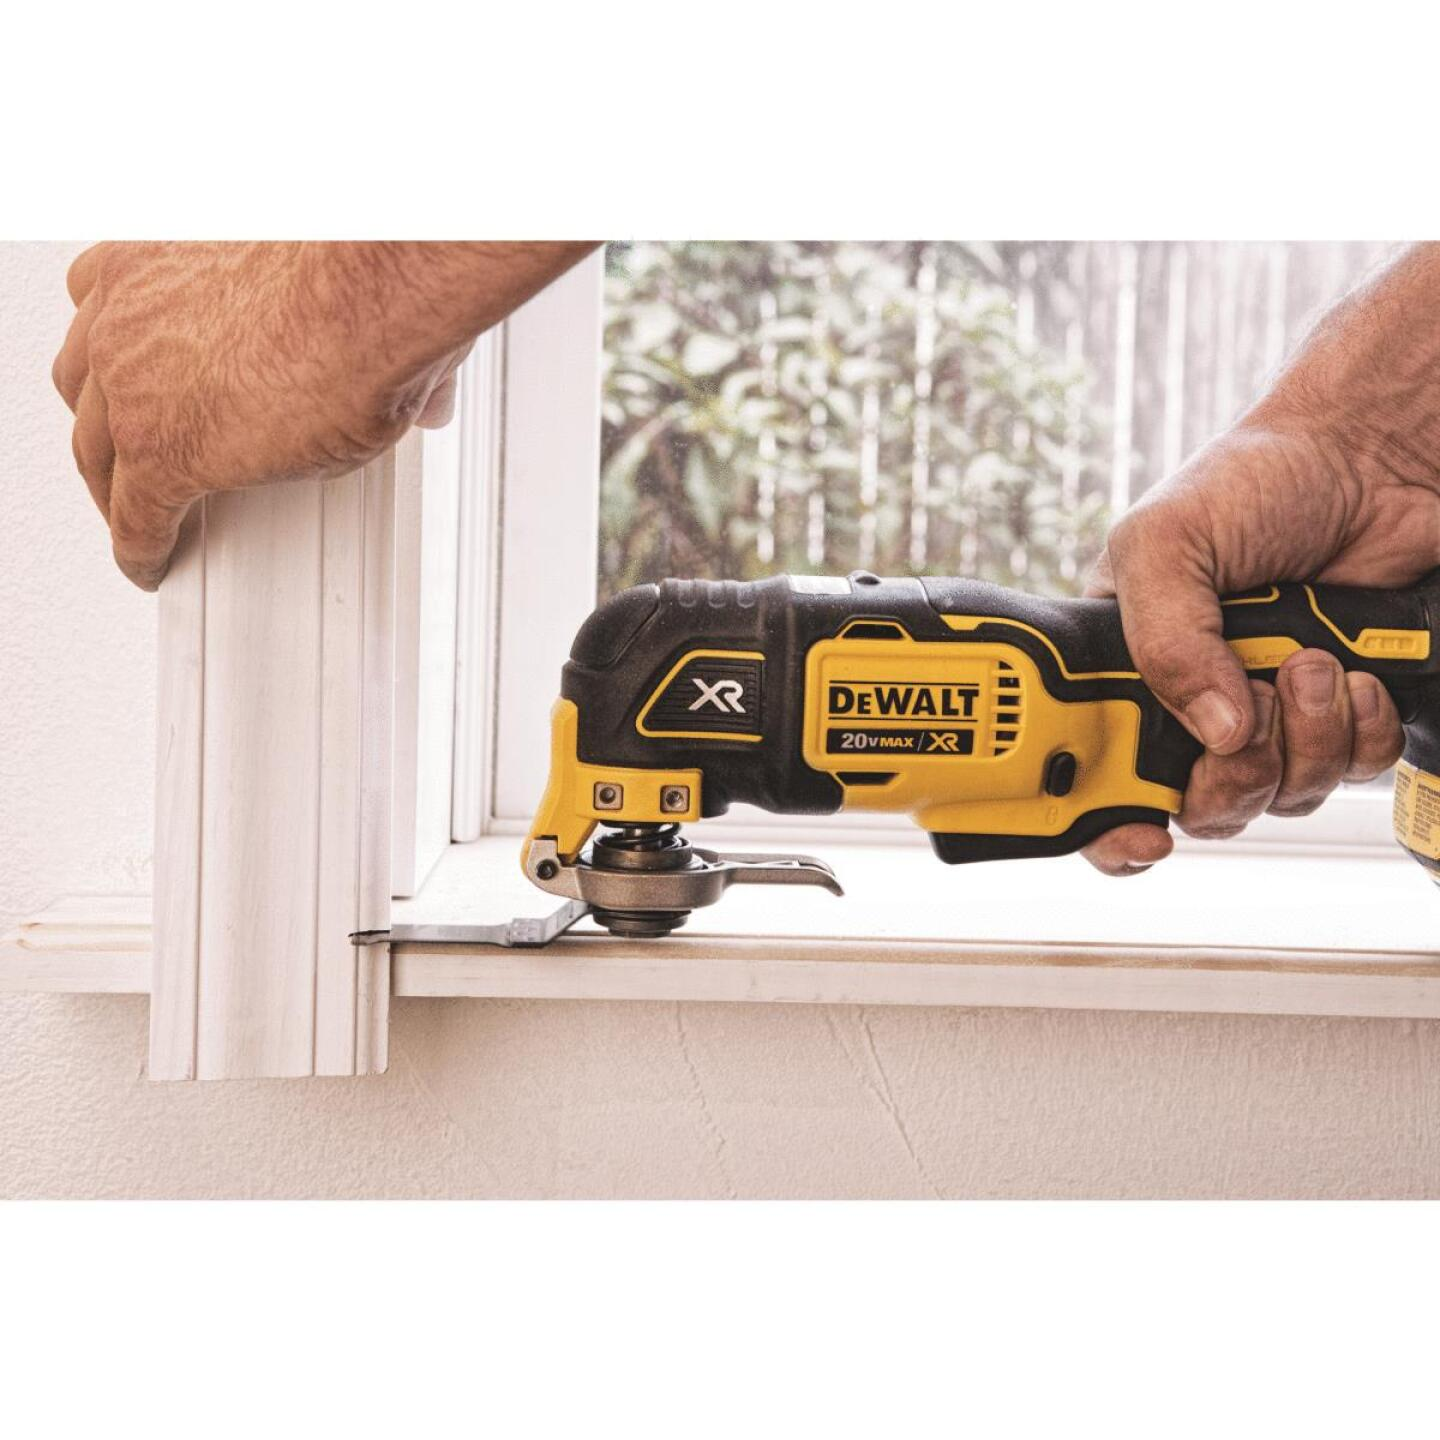 DeWalt 20 Volt MAX XR Lithium-Ion Brushless Cordless Oscillating Tool (Bare Tool) Image 5